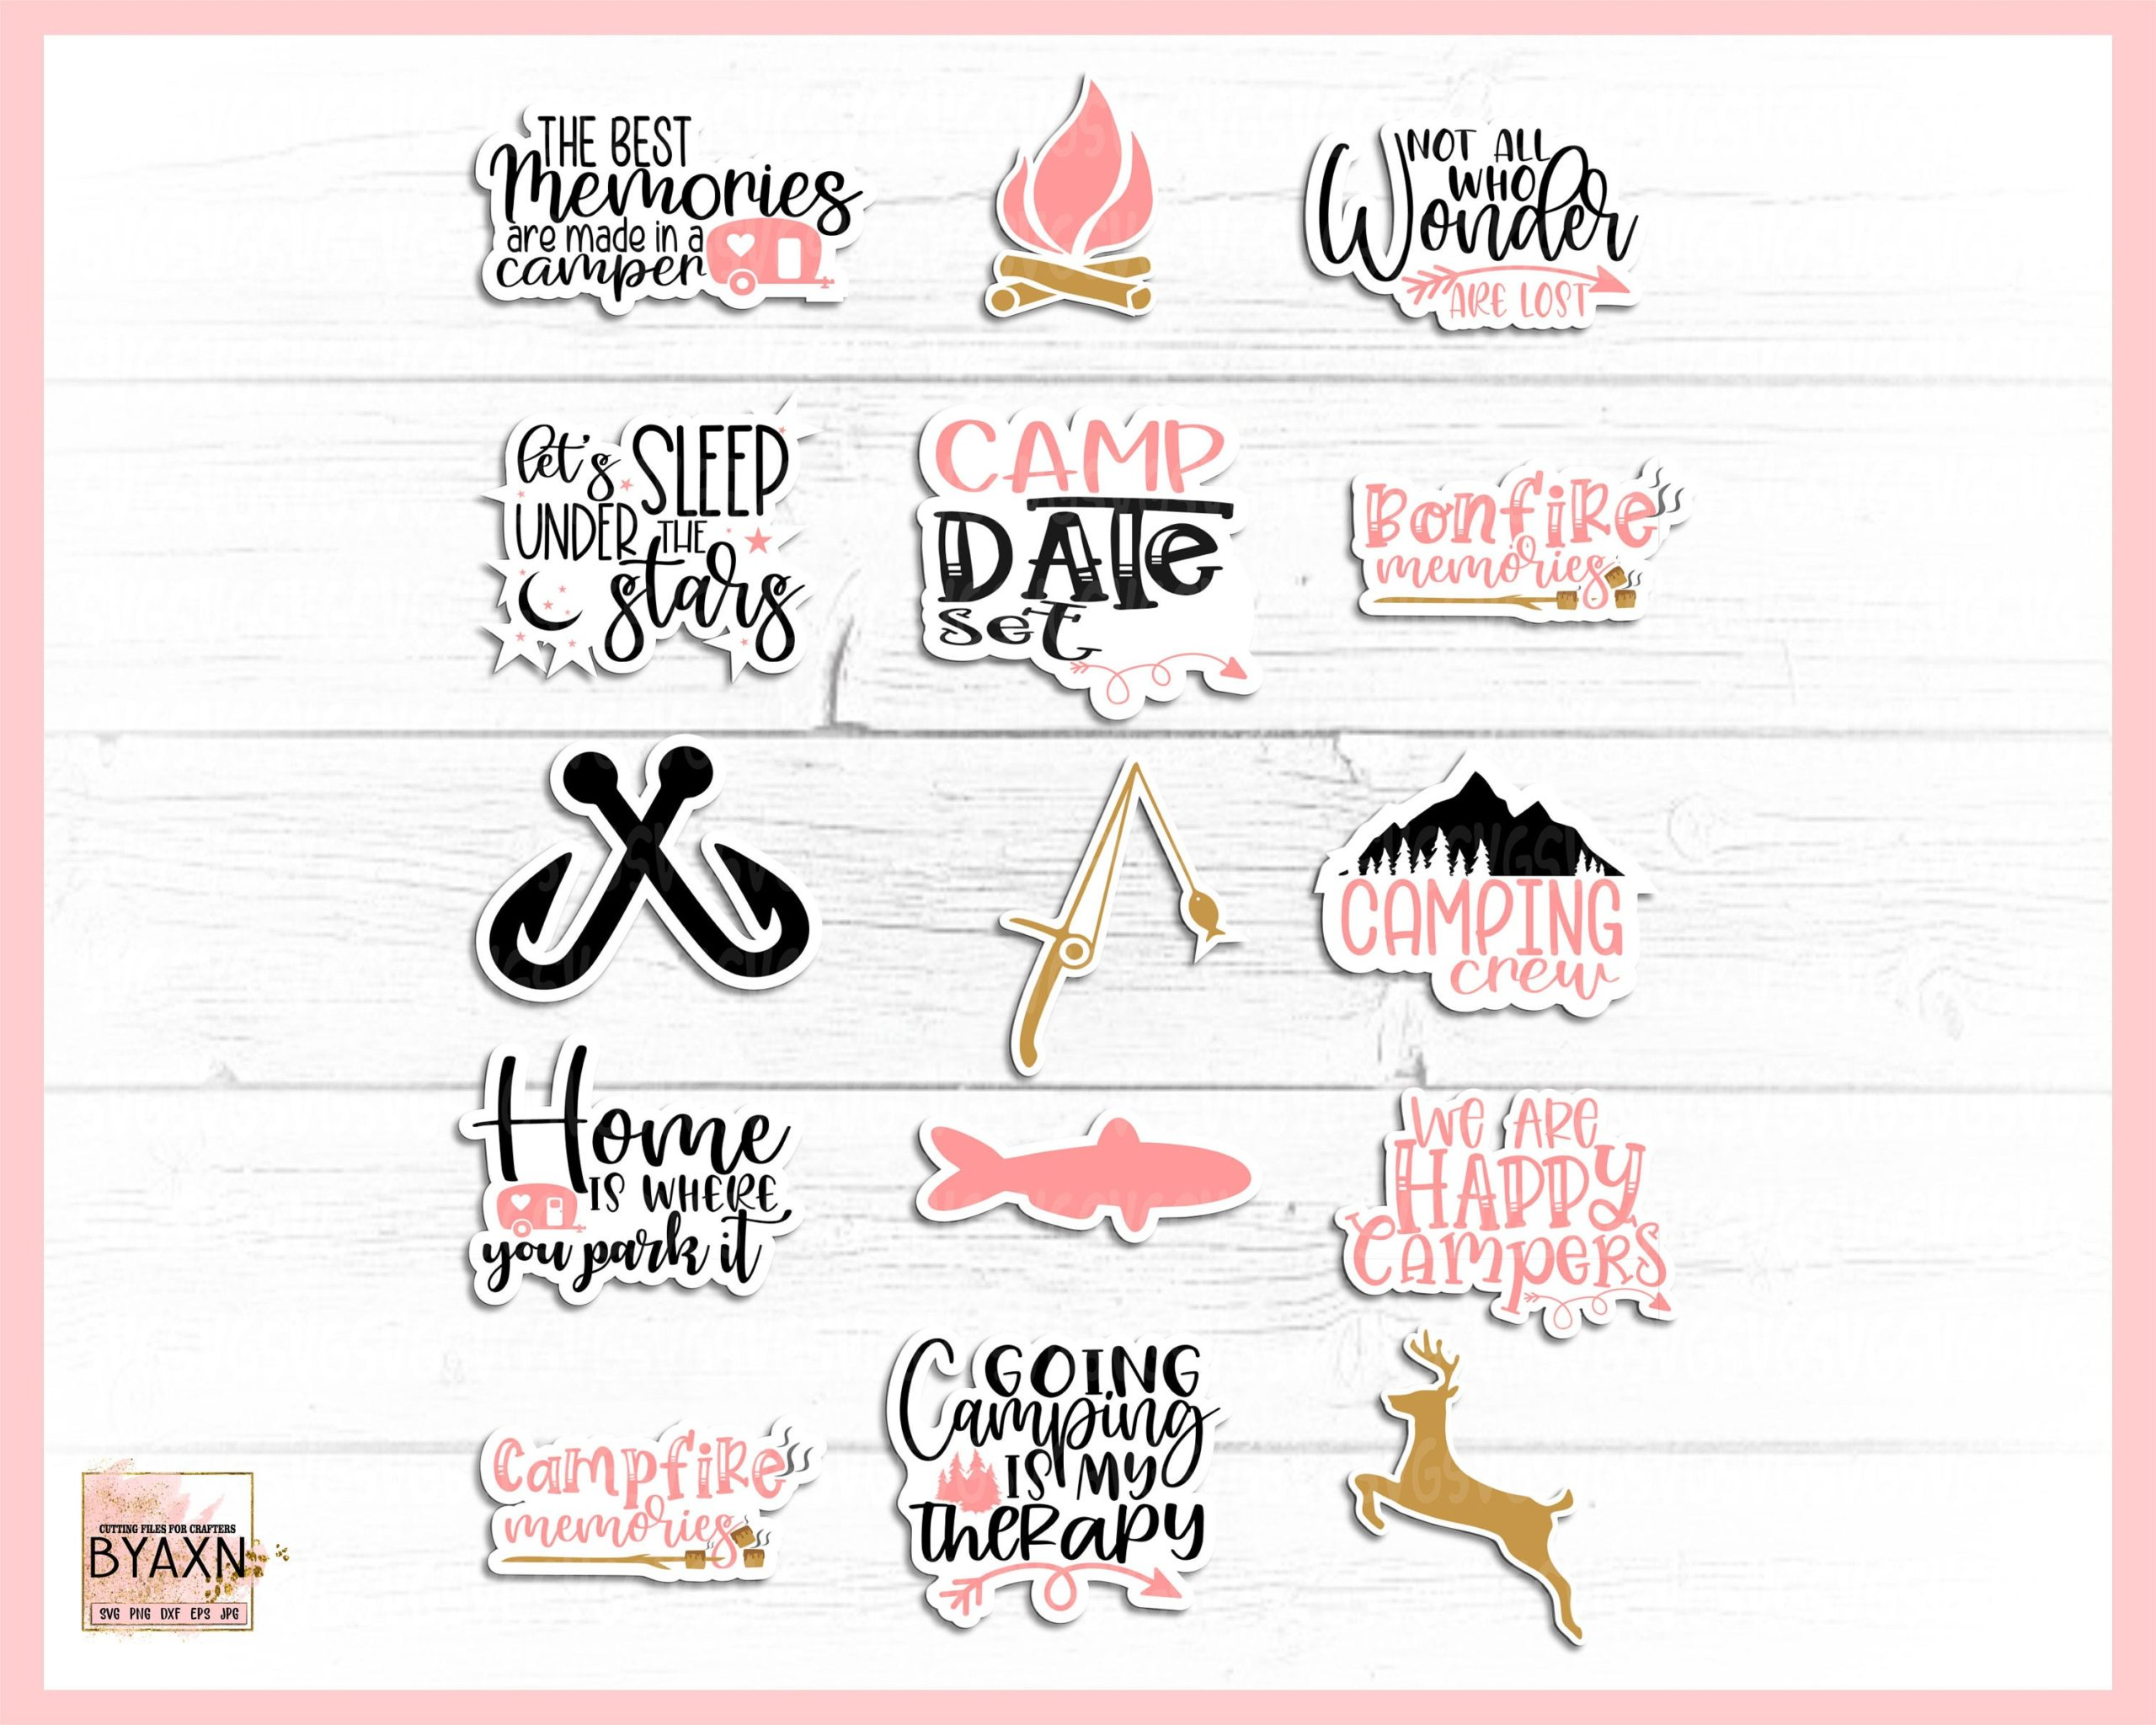 Camping-png-stickers-print-n-cut-stickers-print-cut-stickers-printable-sticker-silhouette-print-n-cut-print-n-cut-png-silhouette-60514a15